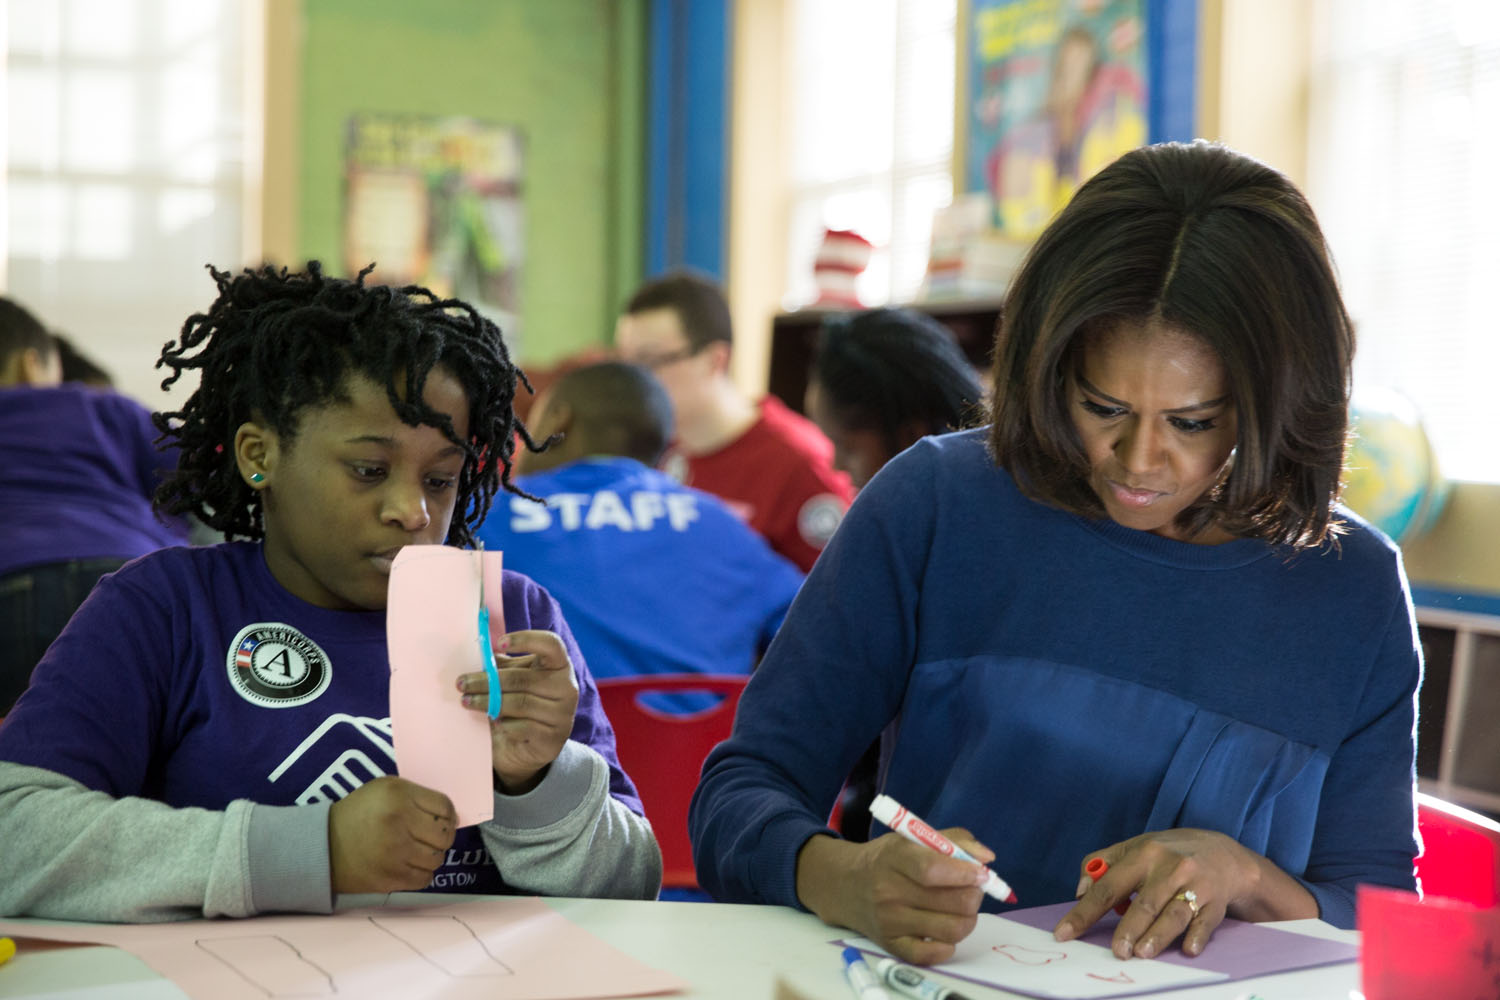 First Lady Michelle Obama works with a young girl during a community service project at the Boys & Girls Club of Greater Washington